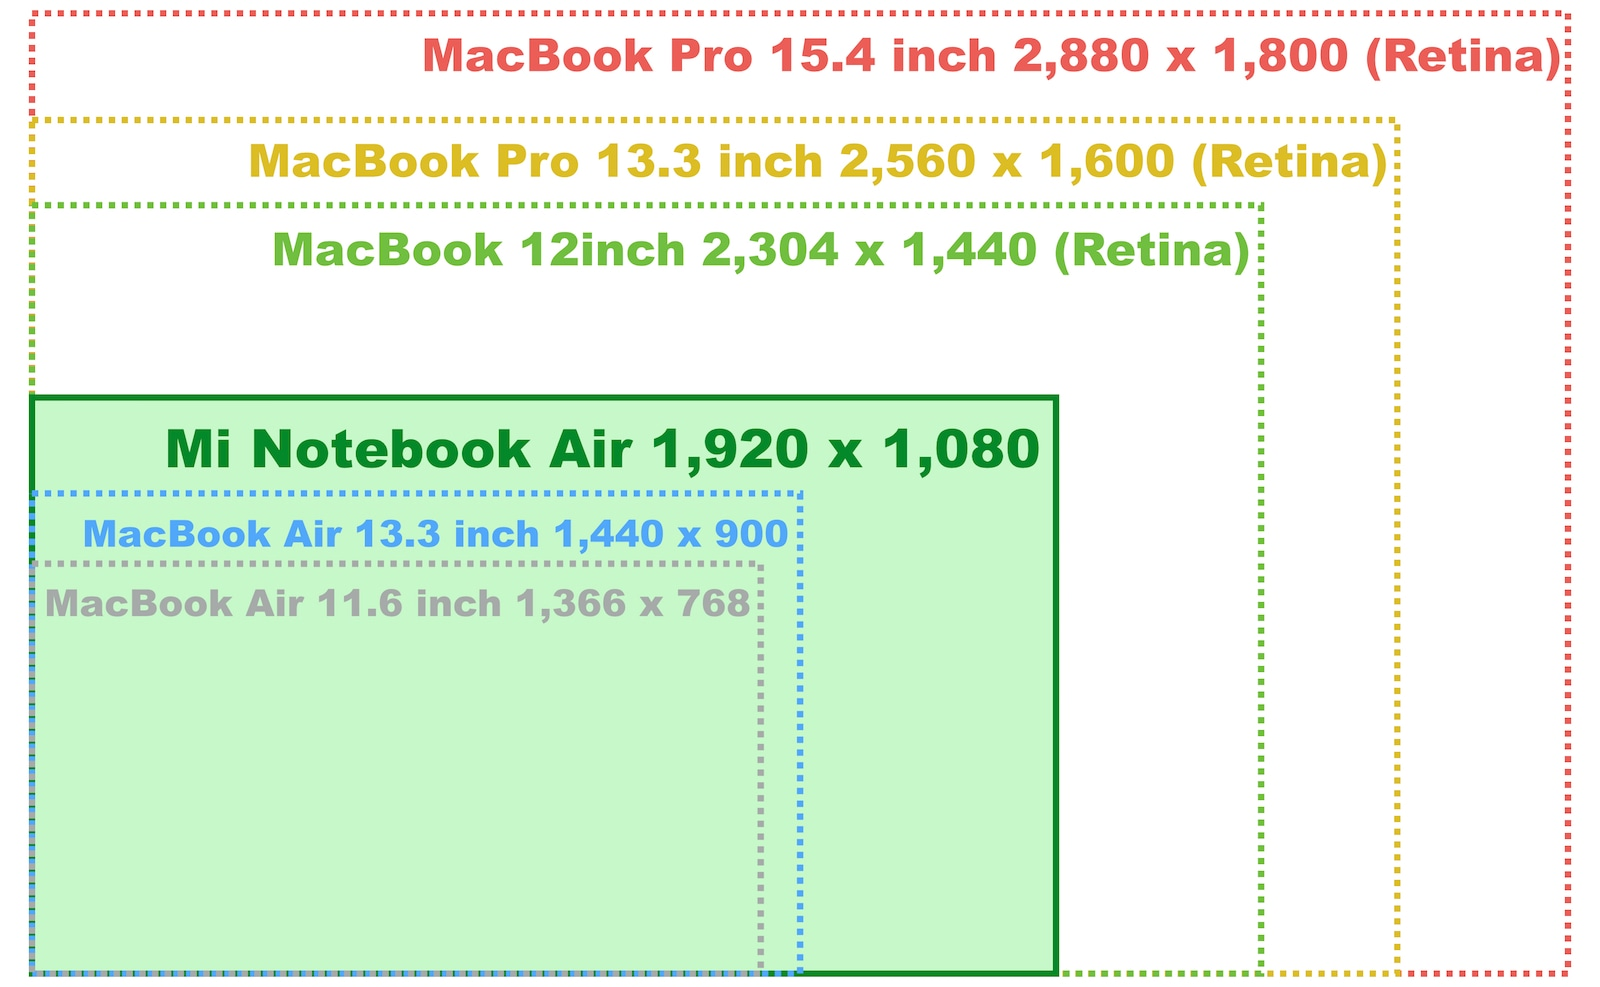 xiaomi-mi-notebook-air-fight-macbook-display